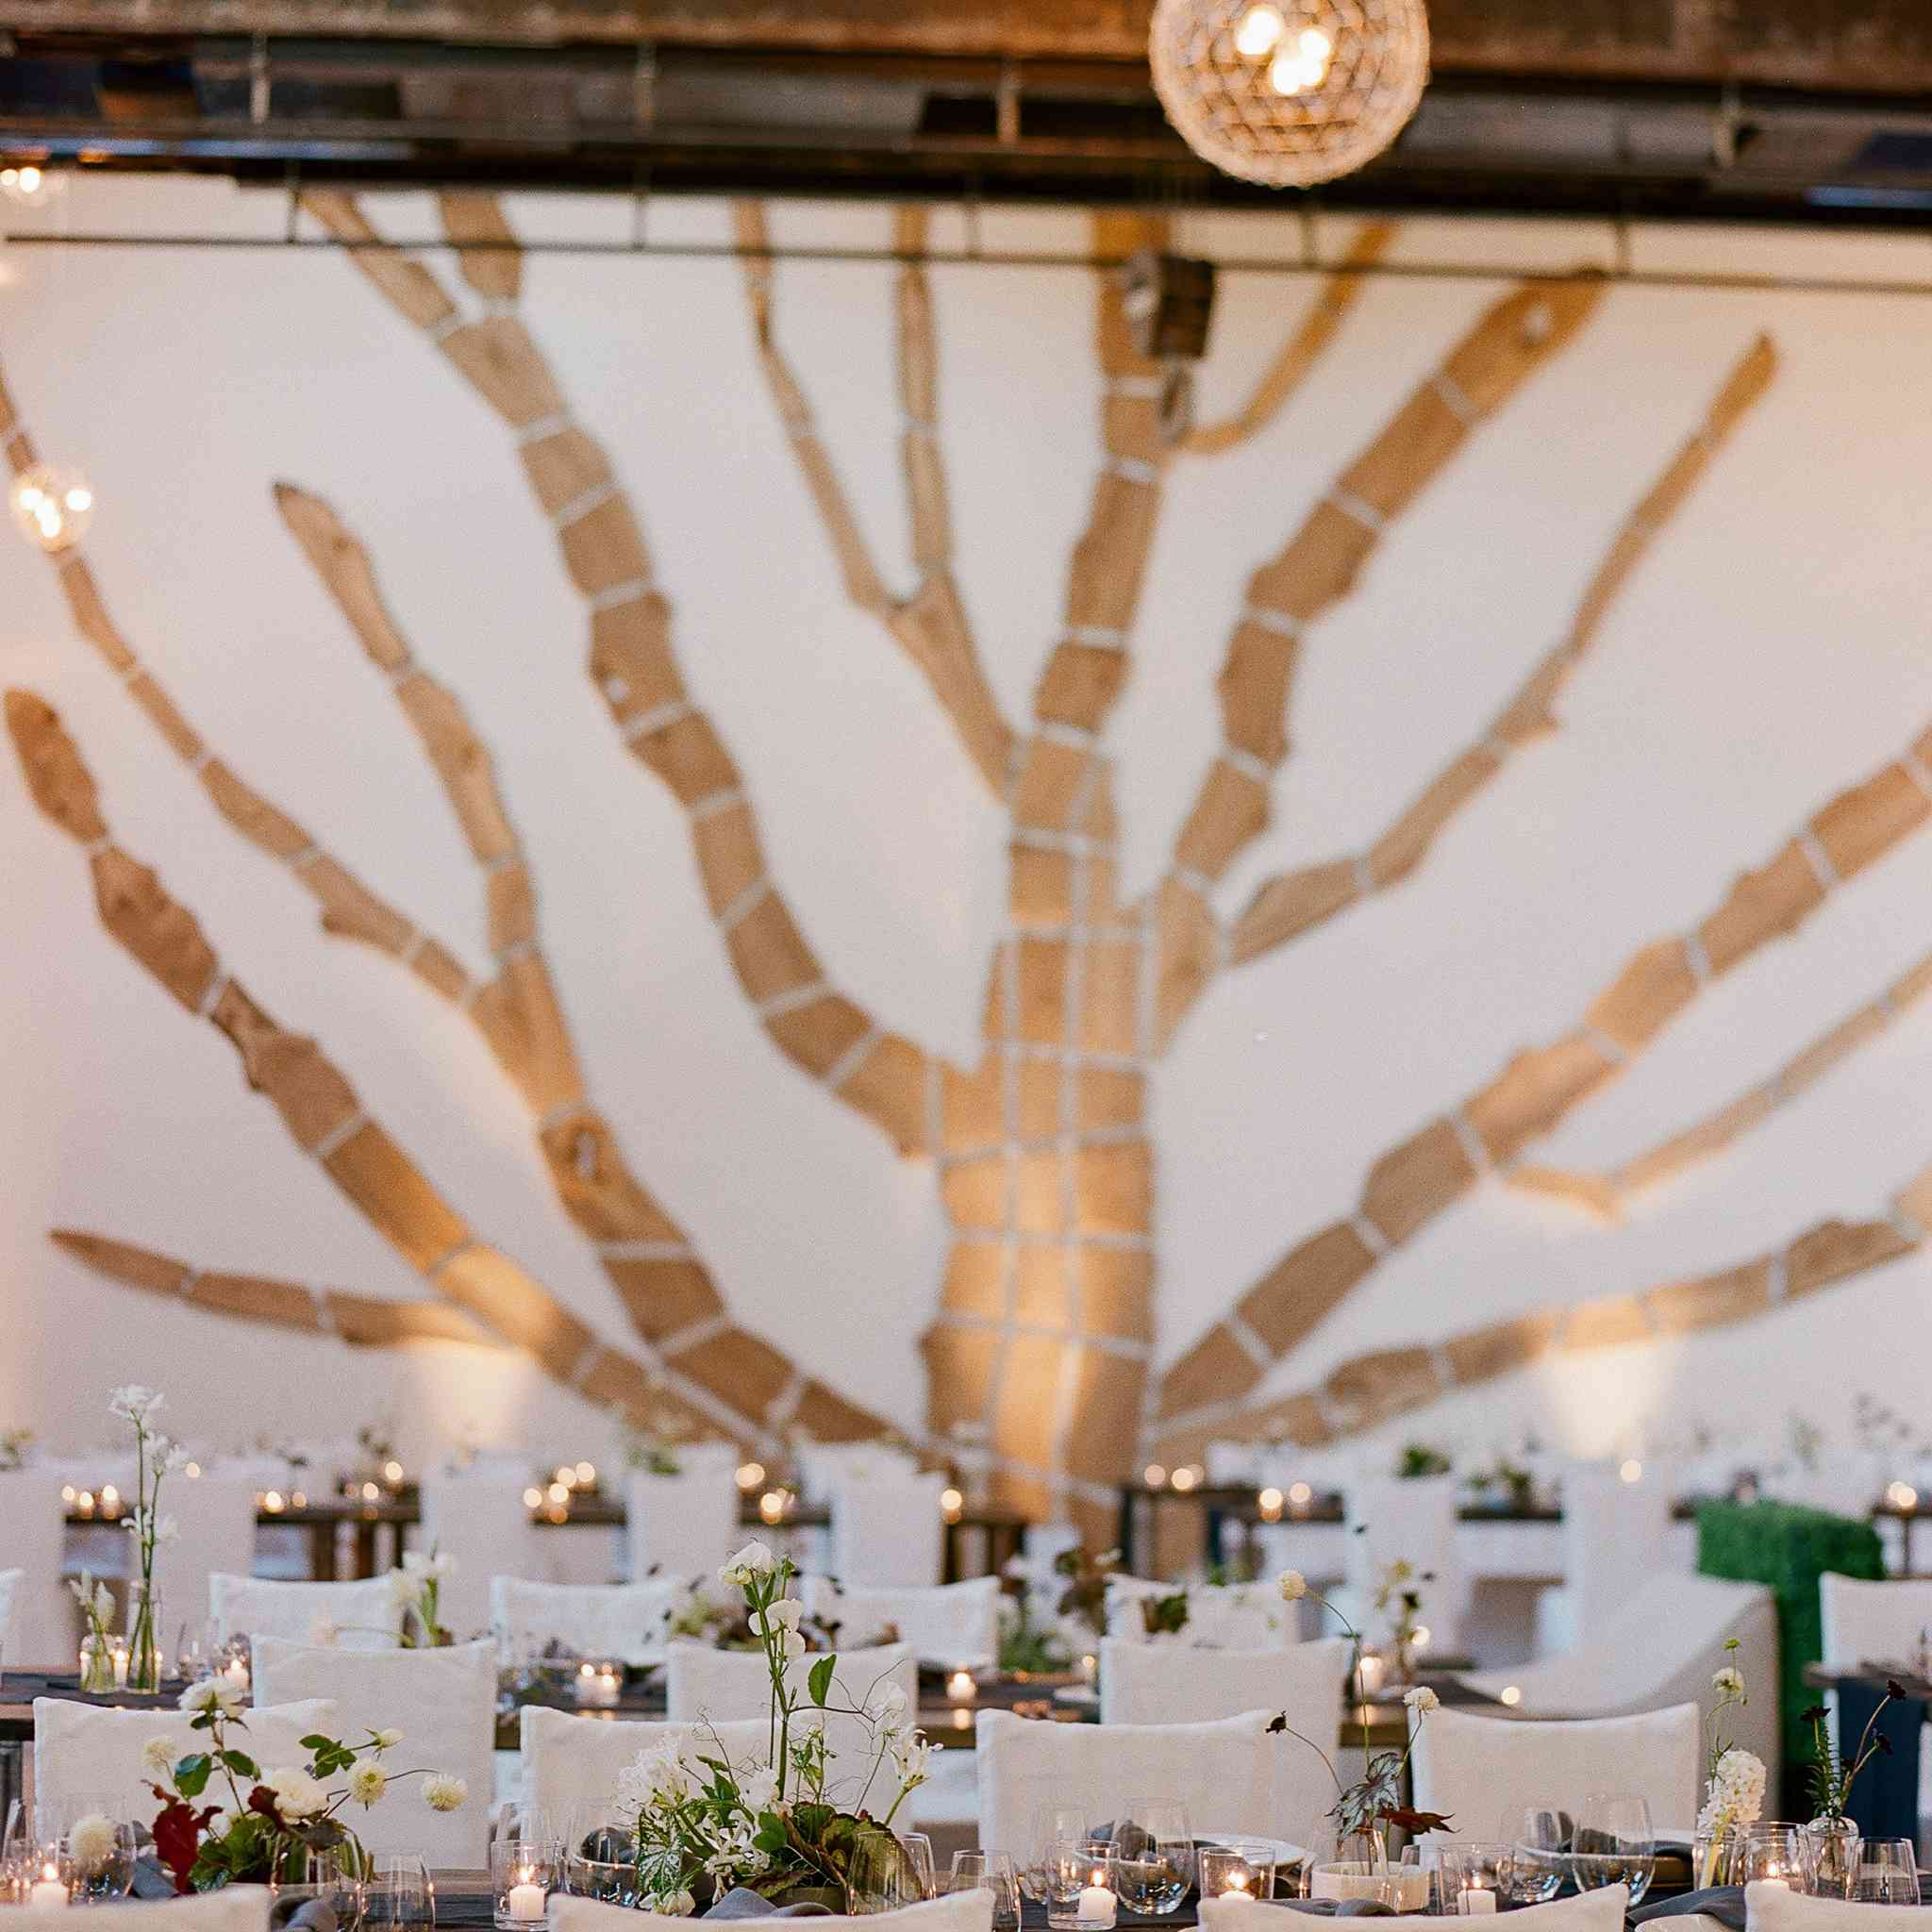 <p>long reception tables with votives and ikebana arrangements</p><br><br>